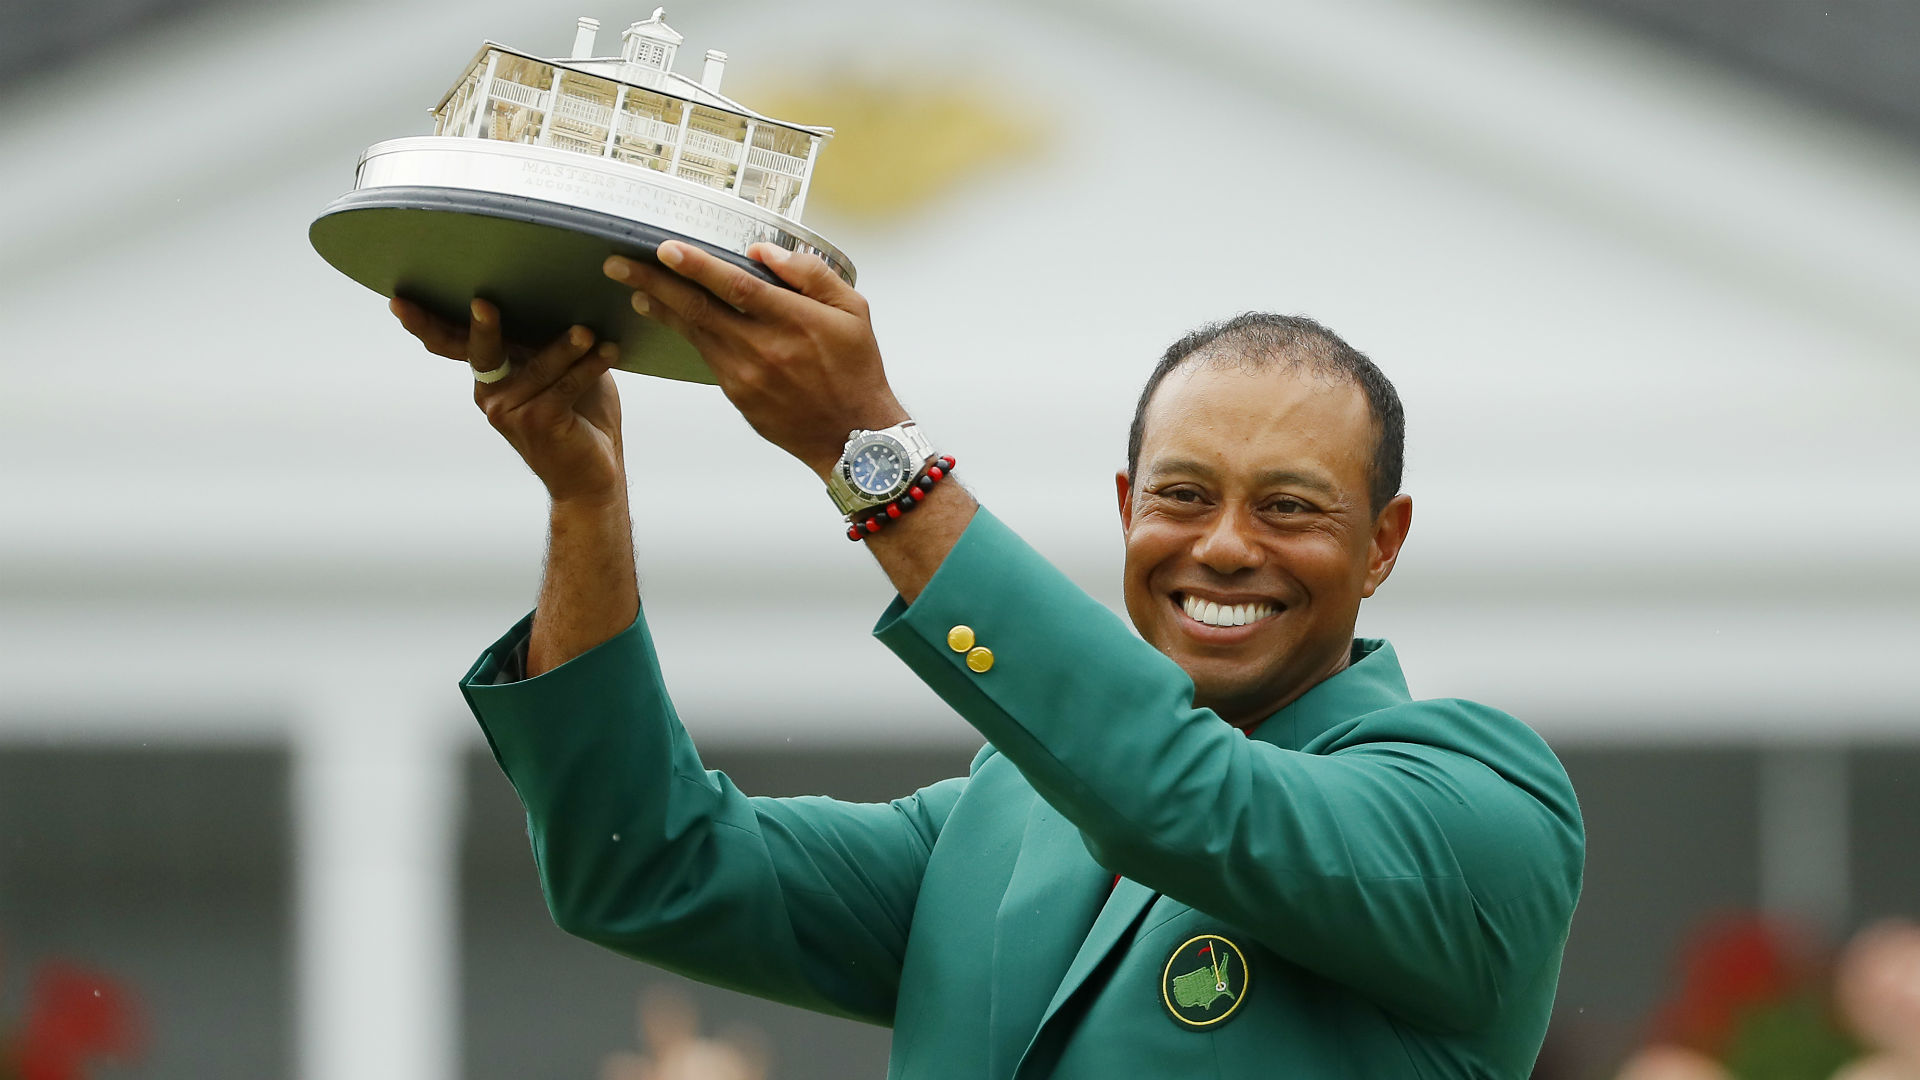 Ahead of what should have been the start of the 2020 Masters, we look back at some of the best and worst Champions Dinners.